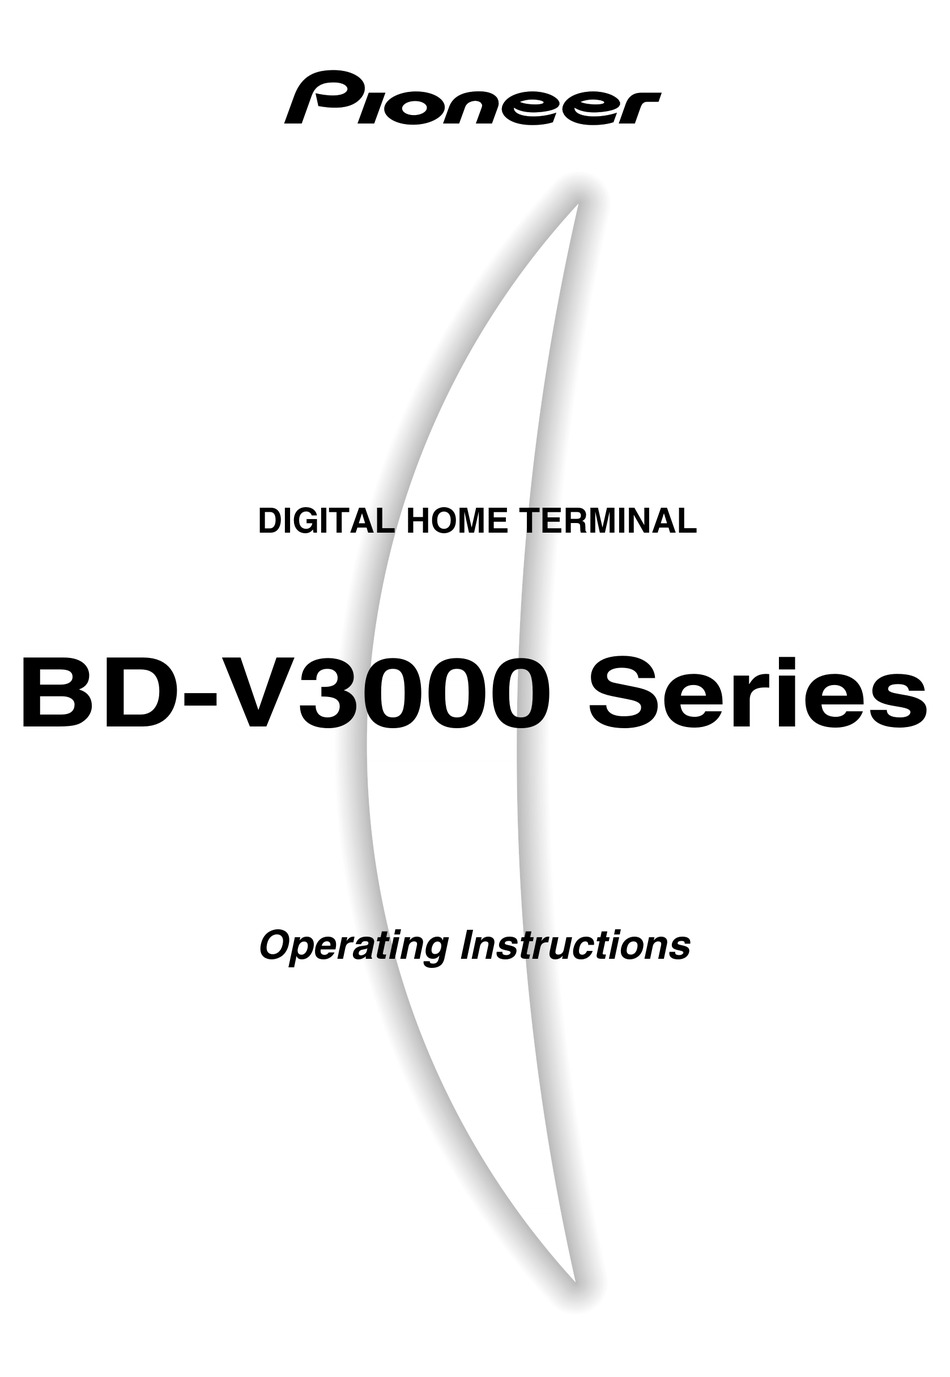 PIONEER BD-V3000 SERIES OPERATING INSTRUCTIONS MANUAL Pdf